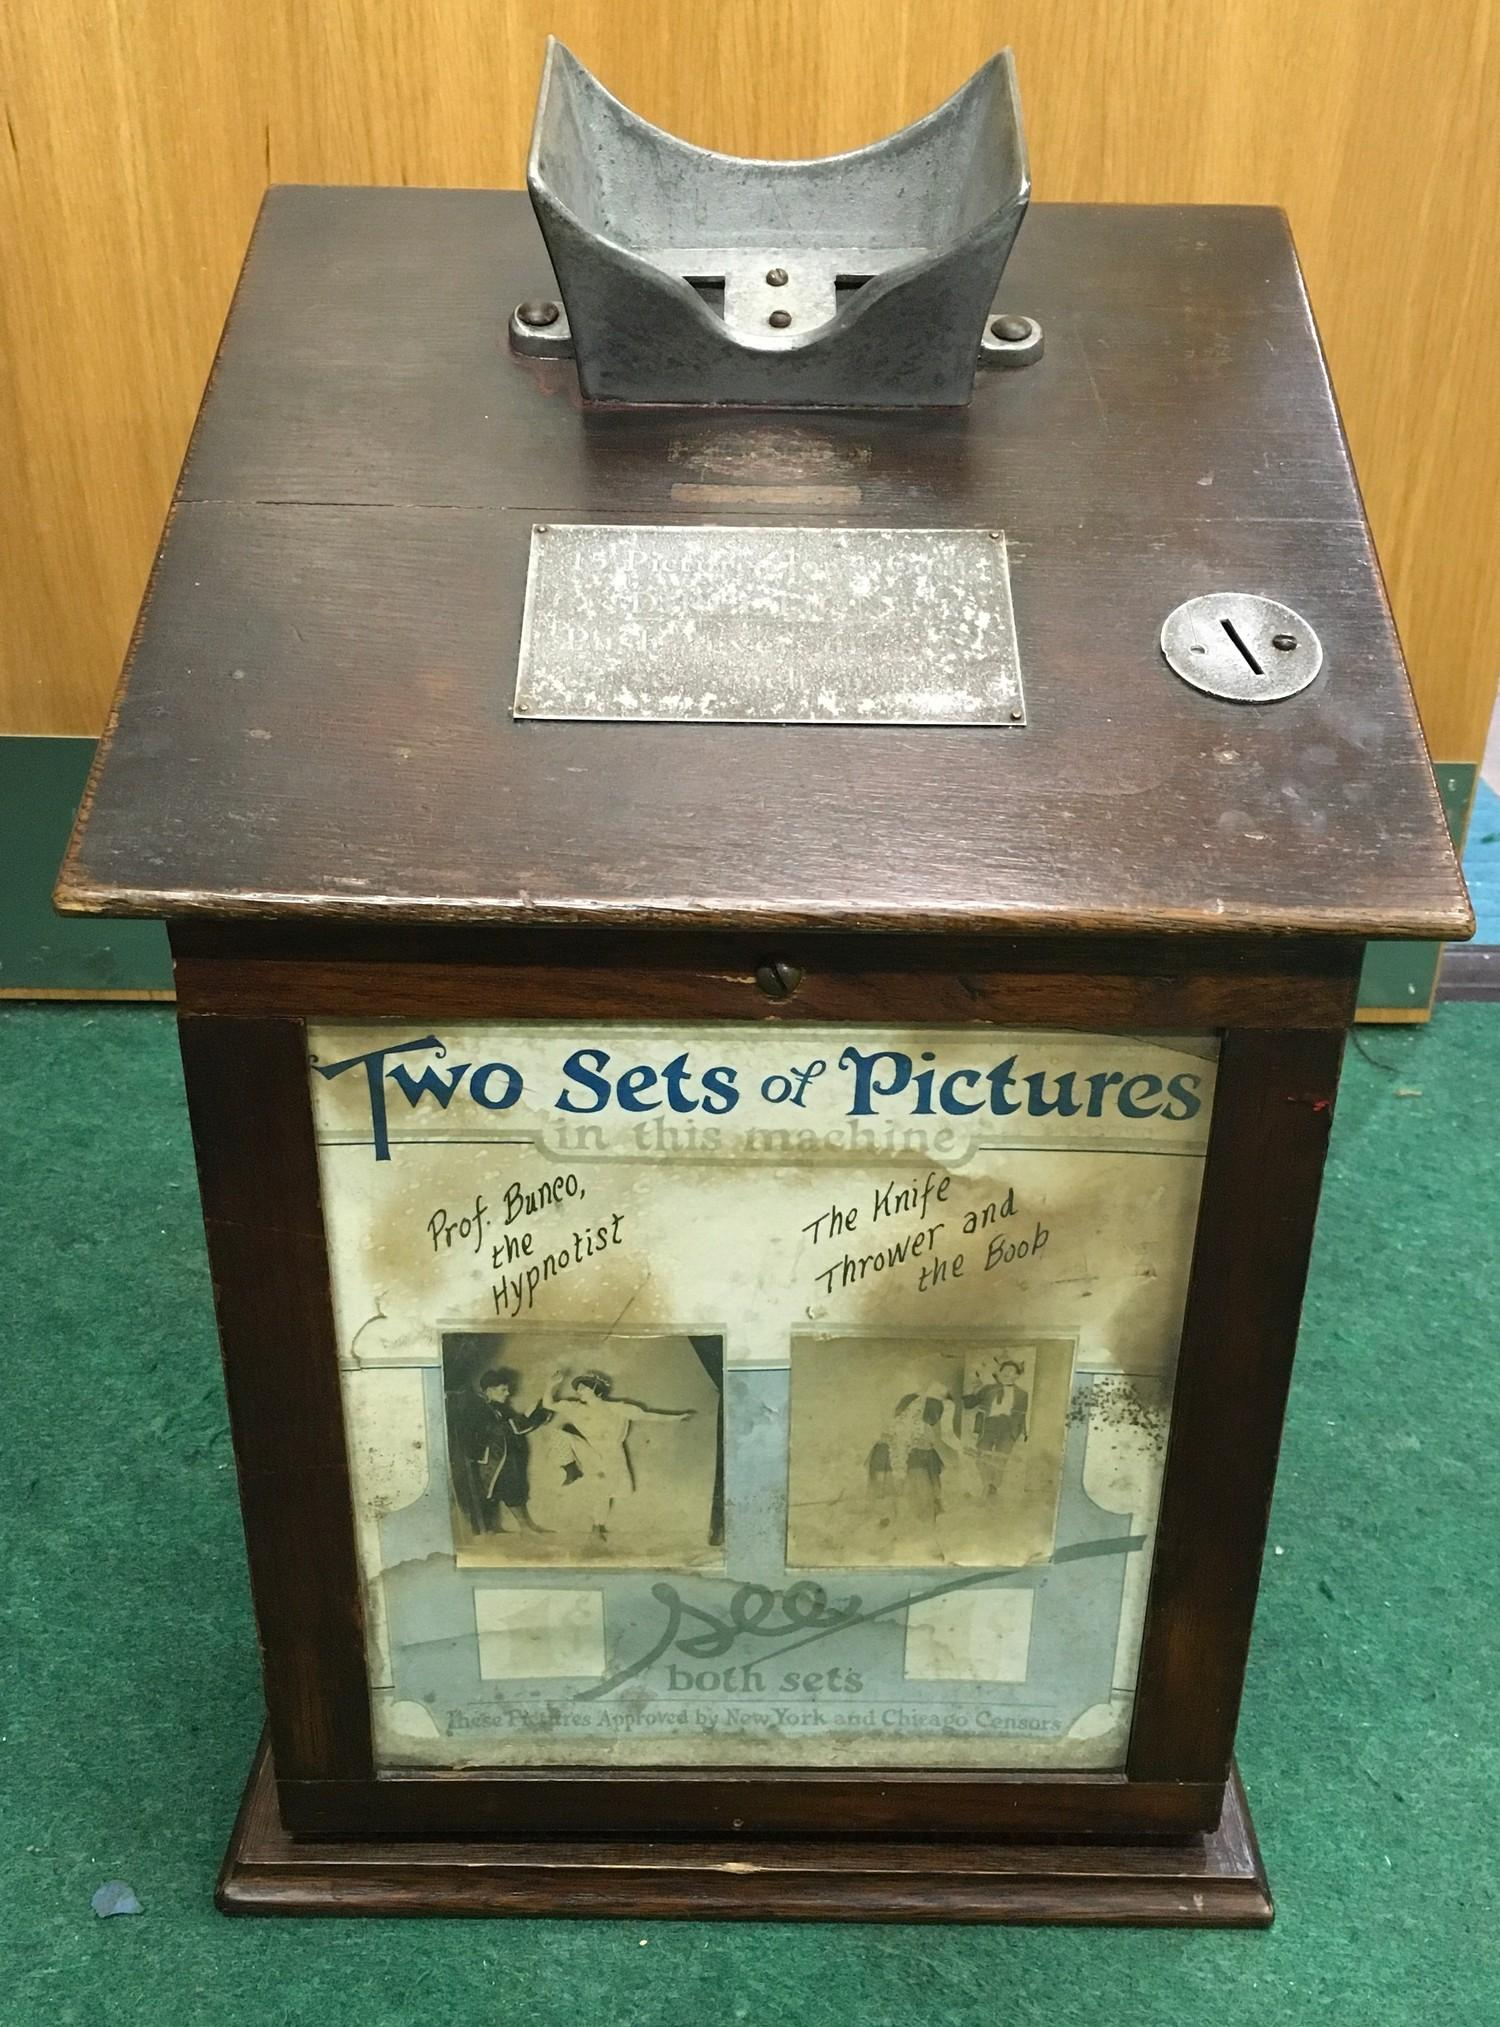 Edwardian counter top Picture Viewer in wood case. Coin operated. Works on old 6d coin or 1 cent.